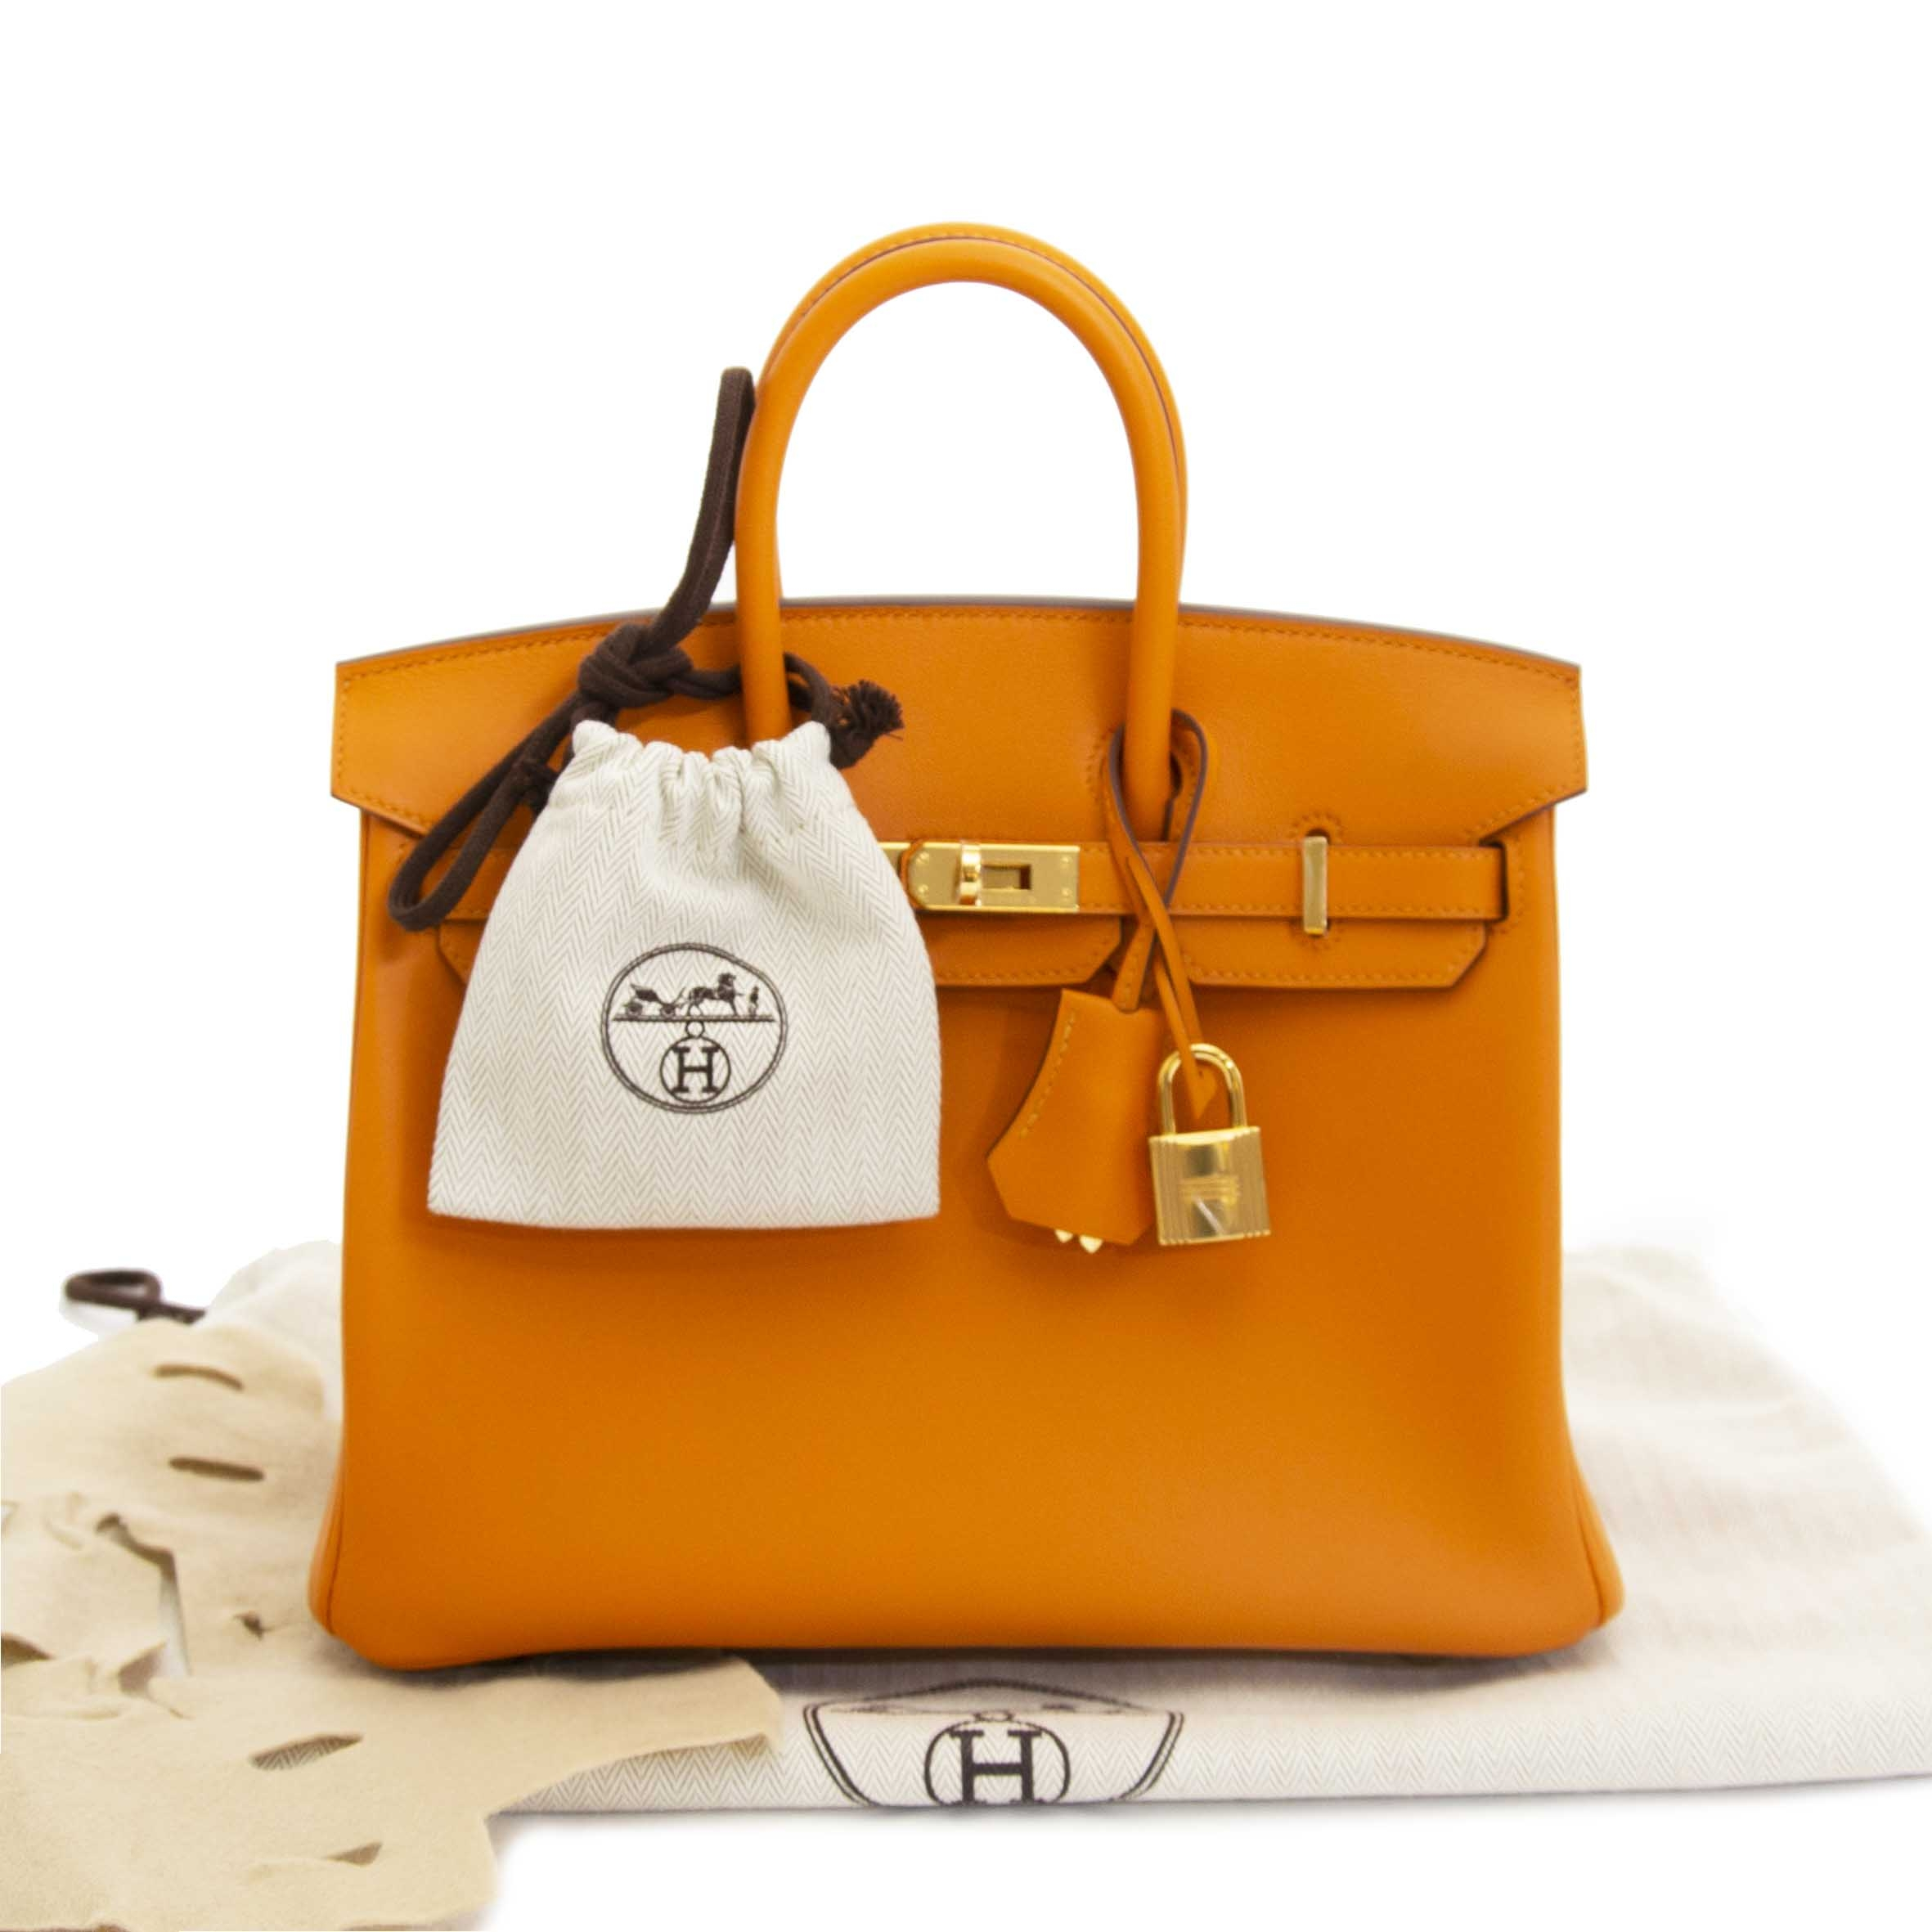 7ab8c0db96f Labellov Buy Brand New Hermes Birkin Bags Online ○ Buy and Sell ...